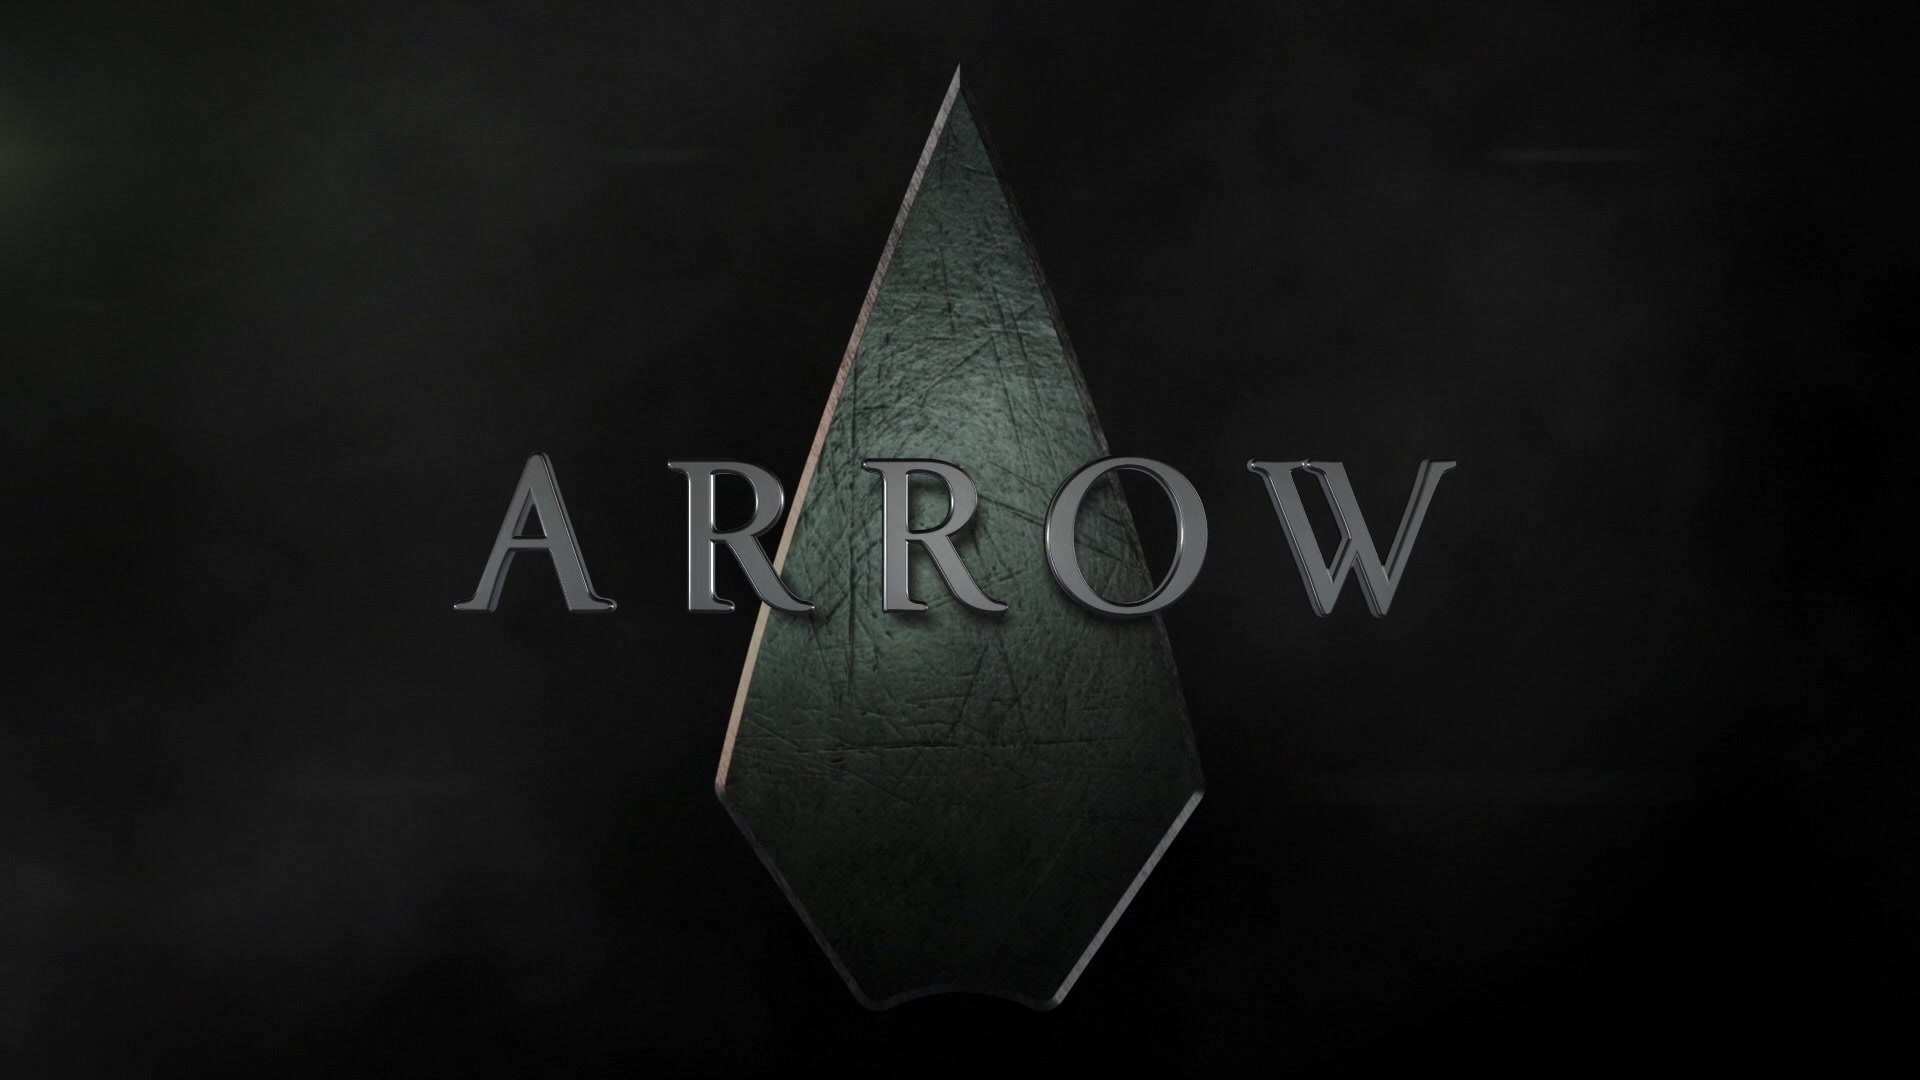 Arrow (TV Series) Episode: Deathstroke Returns